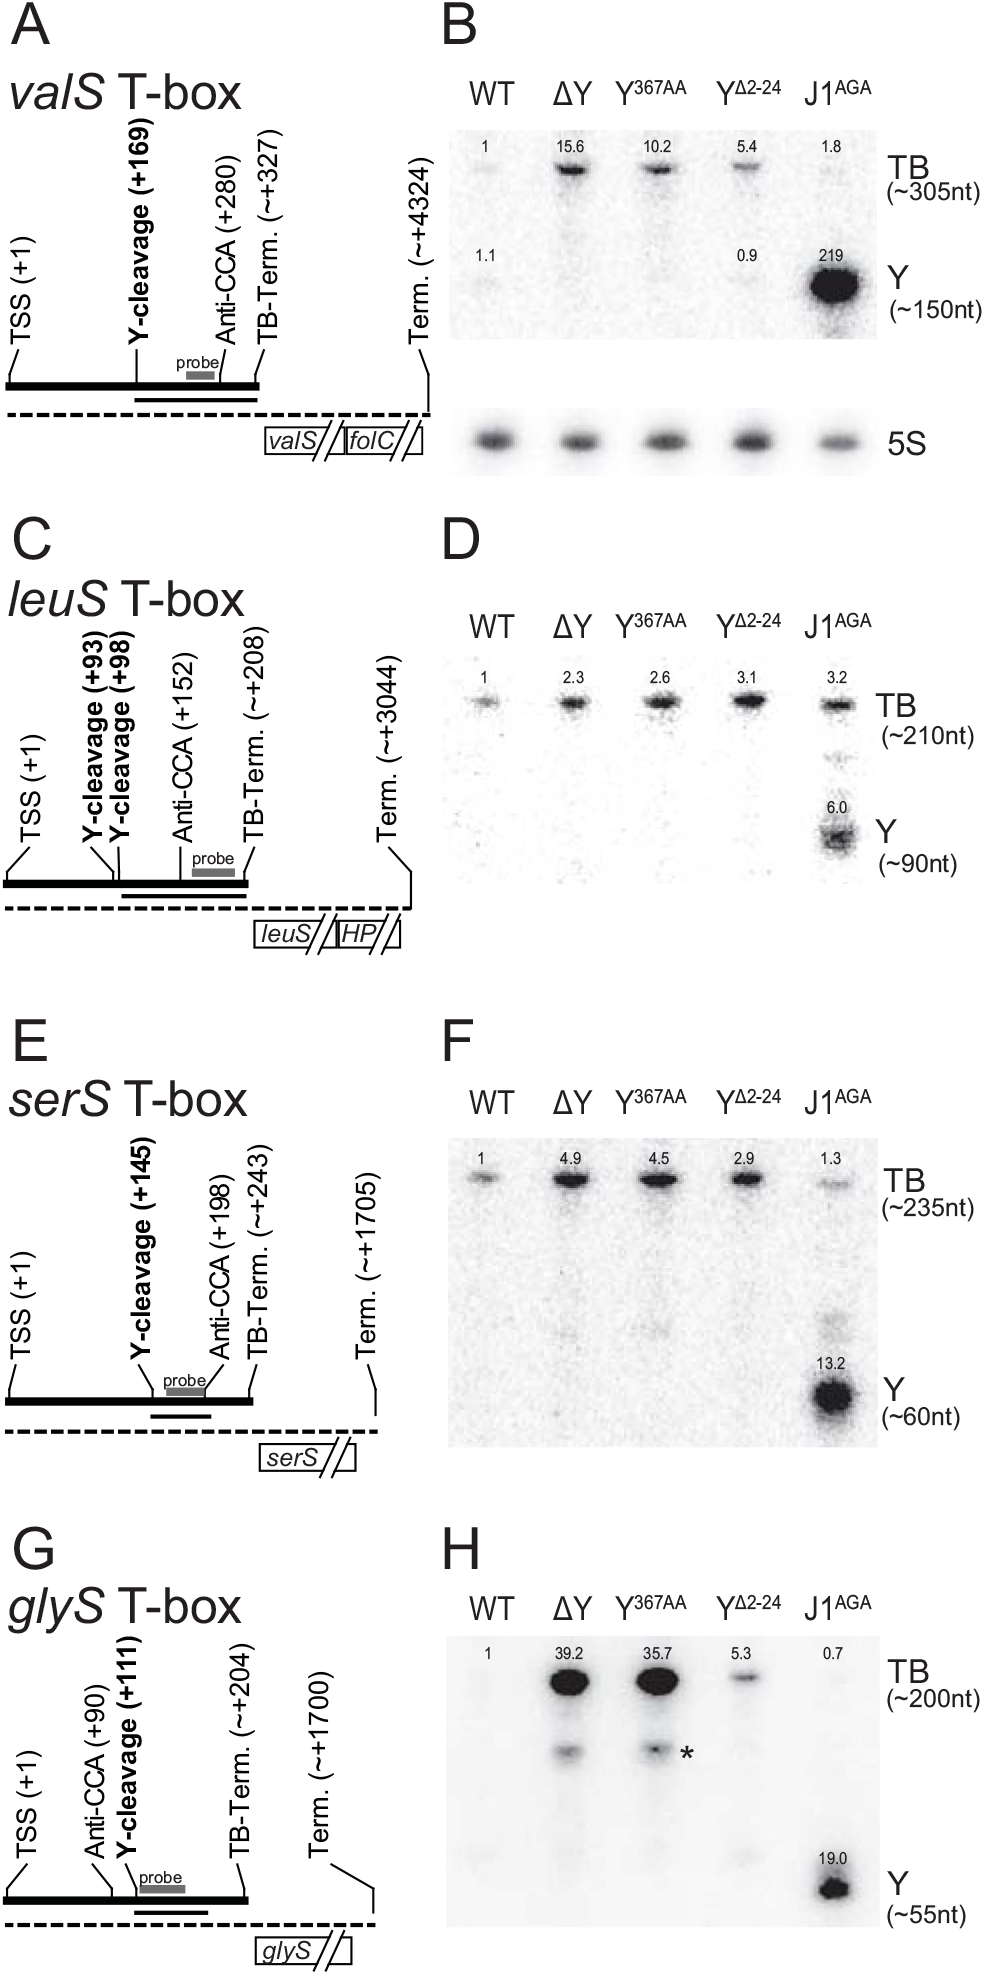 T-box riboswitches cleaved by RNase Y.